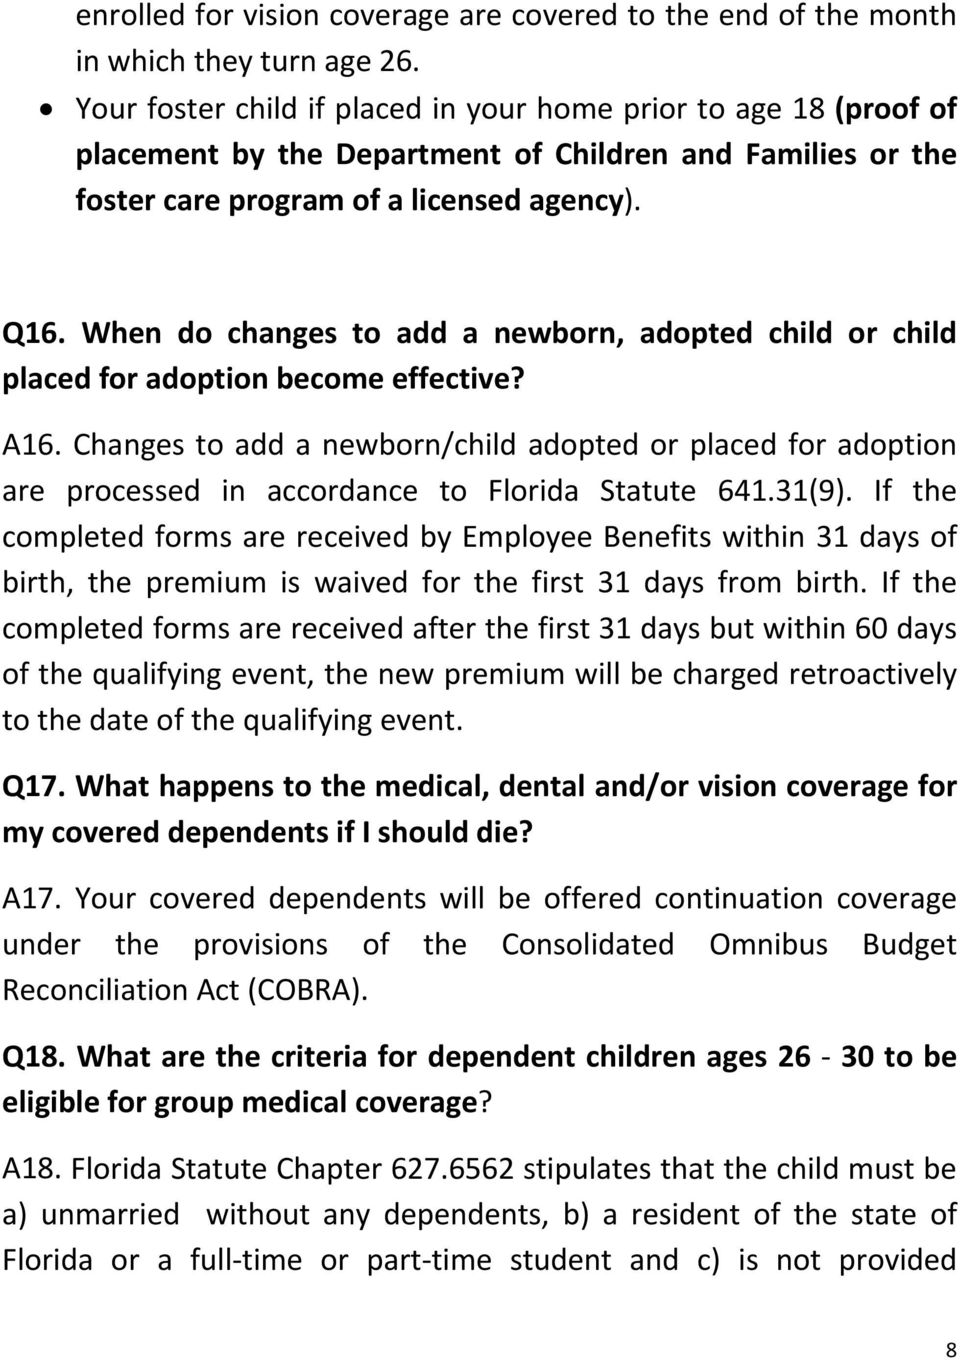 When do changes to add a newborn, adopted child or child placed for adoption become effective? A16.